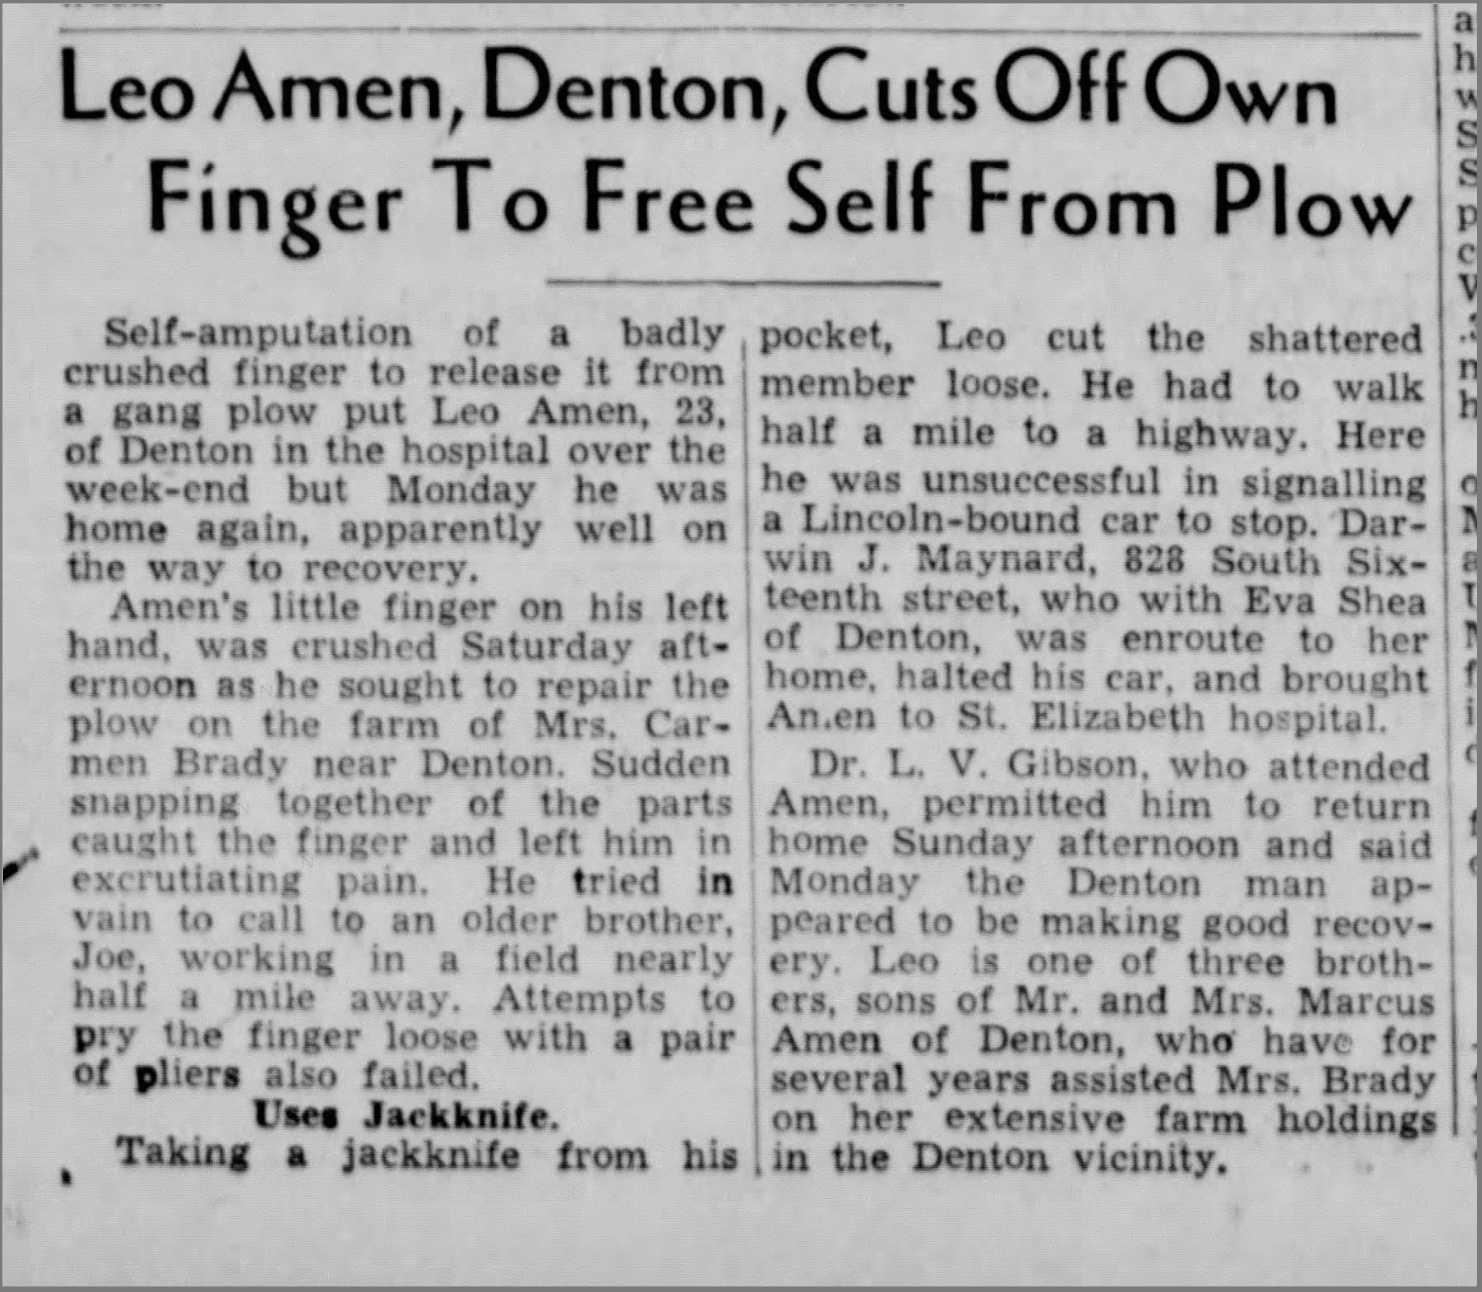 The Lincoln Star (Lincoln, Nebraska) - May 25, 1936